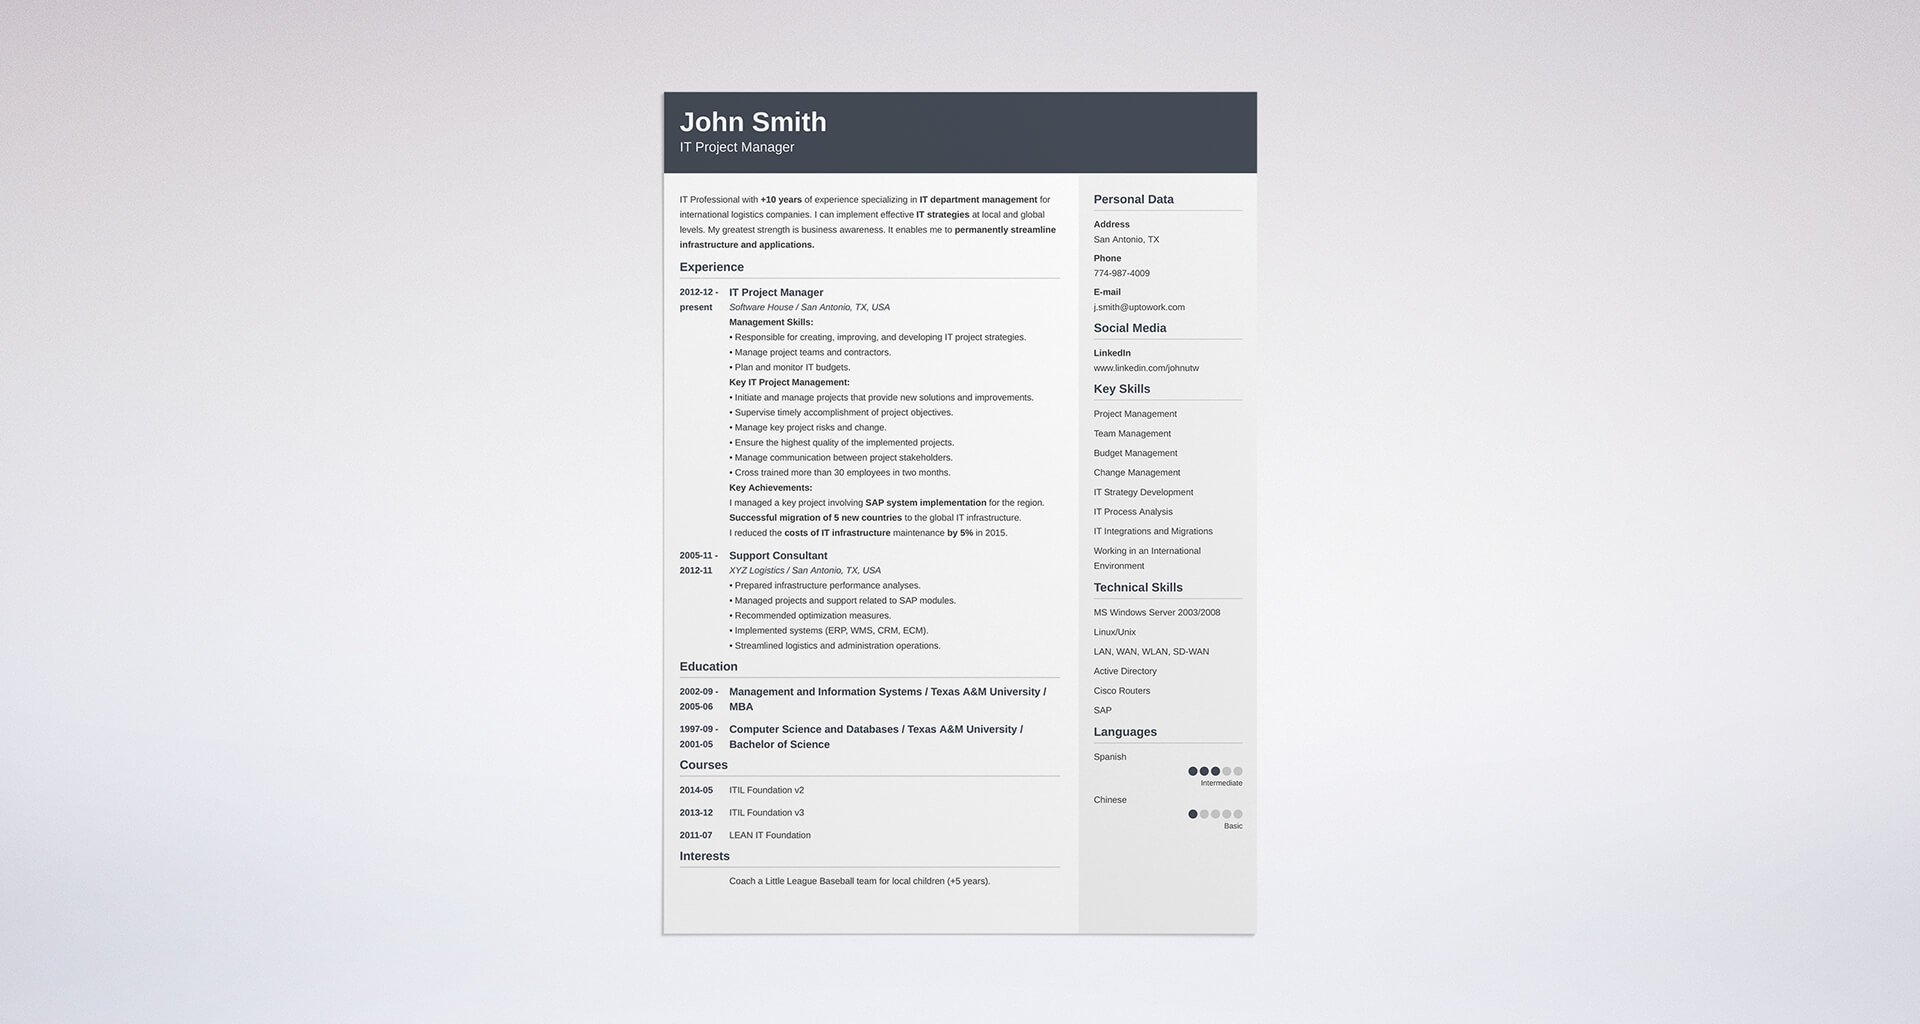 resume formats pick the best one in 3 steps examples templates - Best Resumes Formats